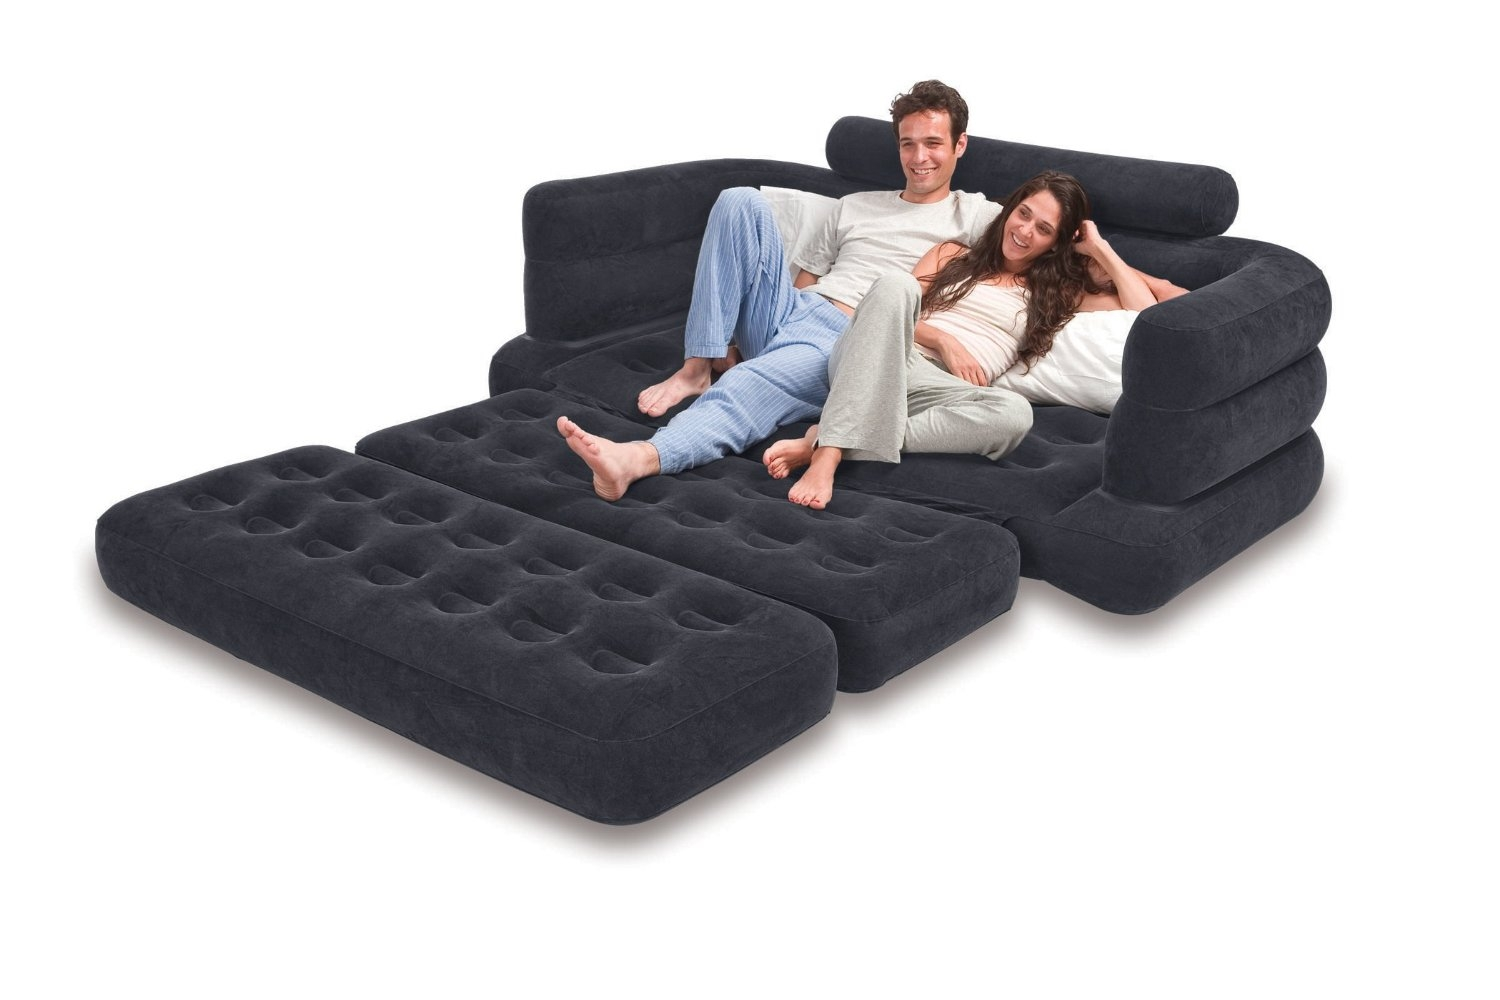 Intex Inflatable Sofas Top 3 Based On Statistical Menta Model With Inflatable Sofas And Chairs (Image 11 of 15)